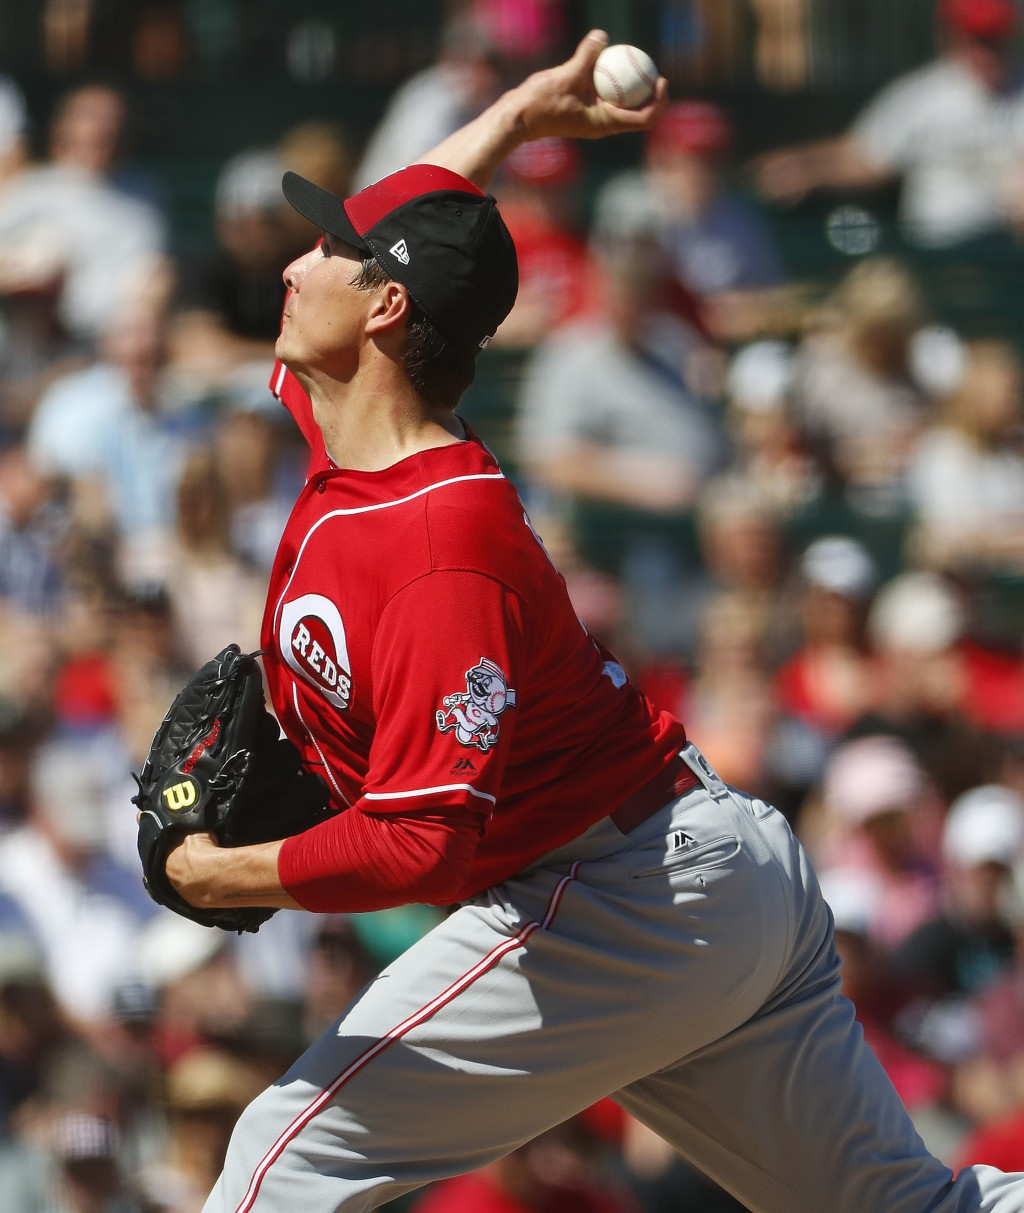 Cincinnati Reds pitcher Homer Bailey throws against the Los Angles Angels during the first inning of a spring training baseball game Monday, March 12,